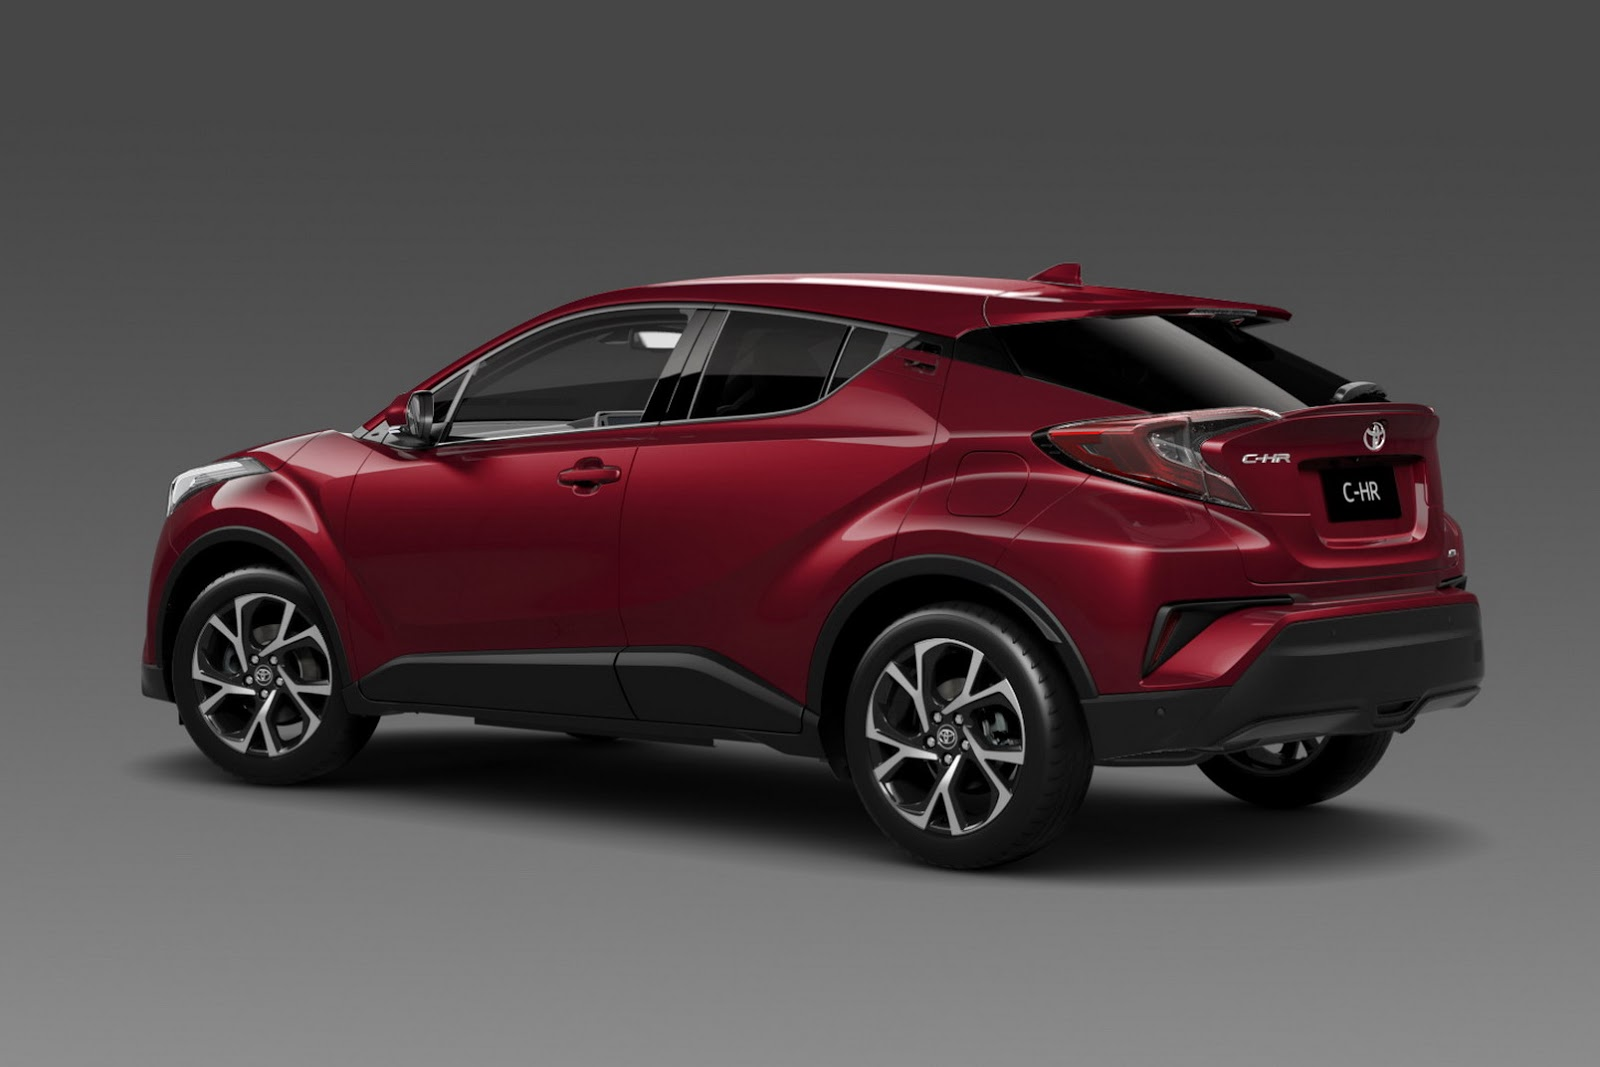 Check Out The 2017 Toyota C-HR Small Crossover In Fancier ...